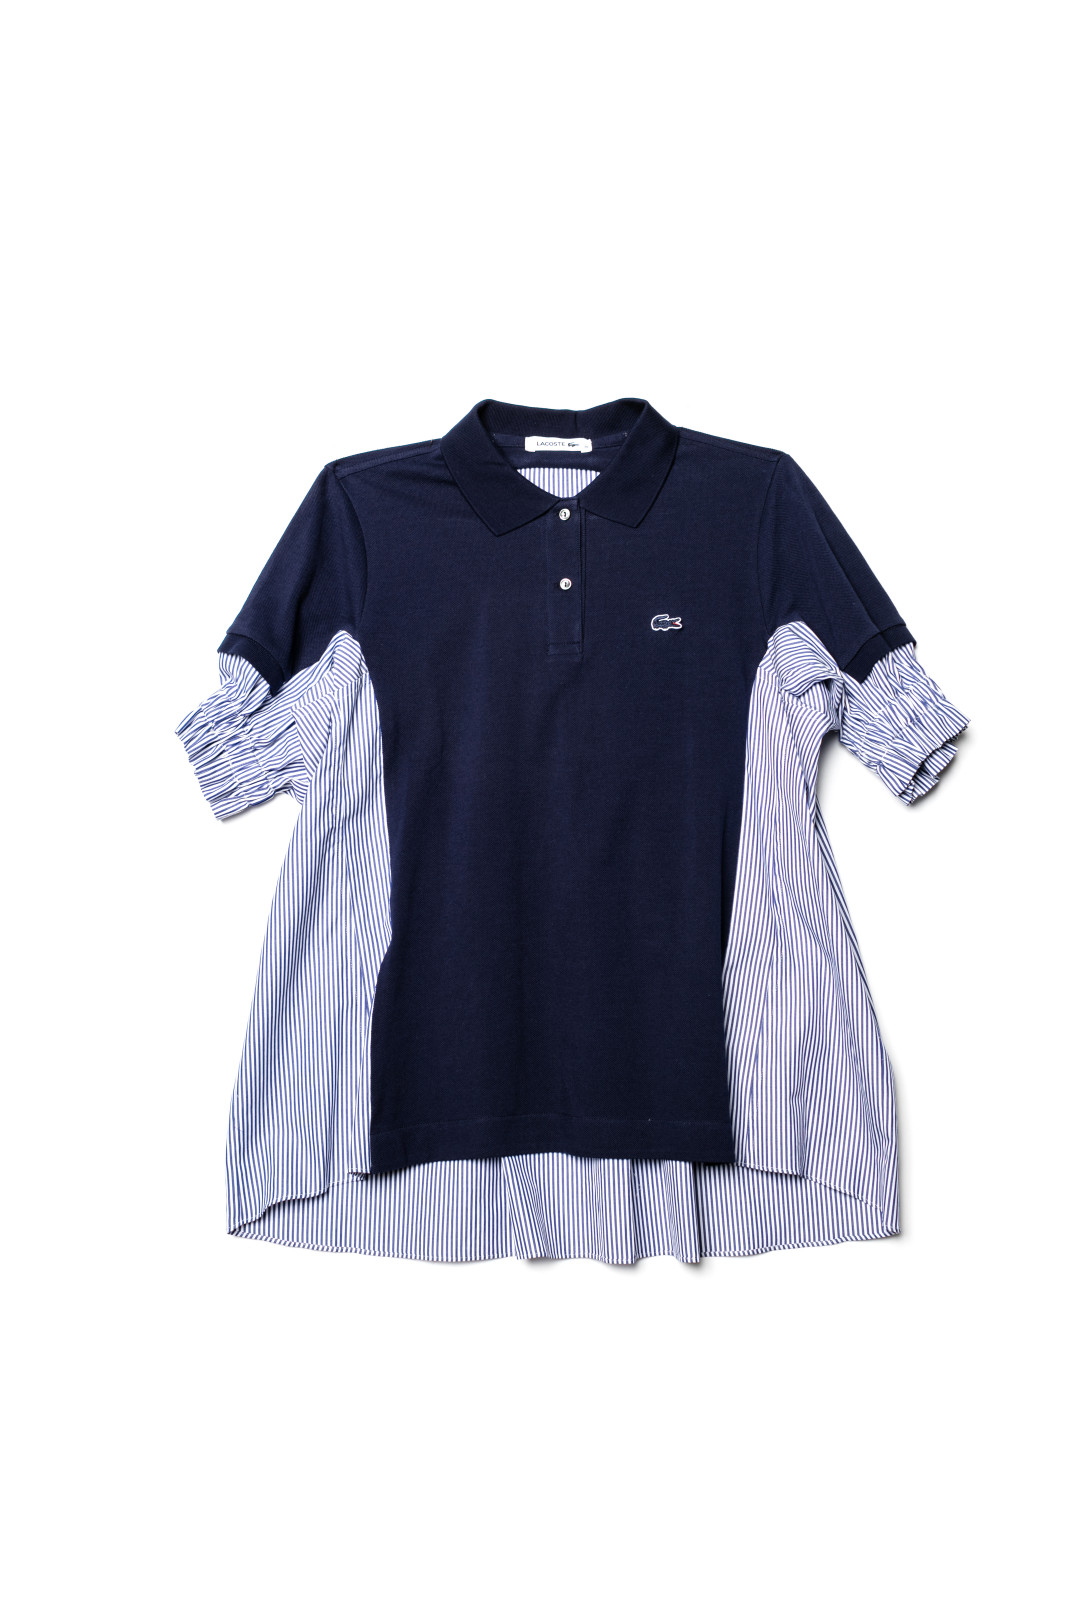 Short Sleeve polo ネイビー(4万2,000円)